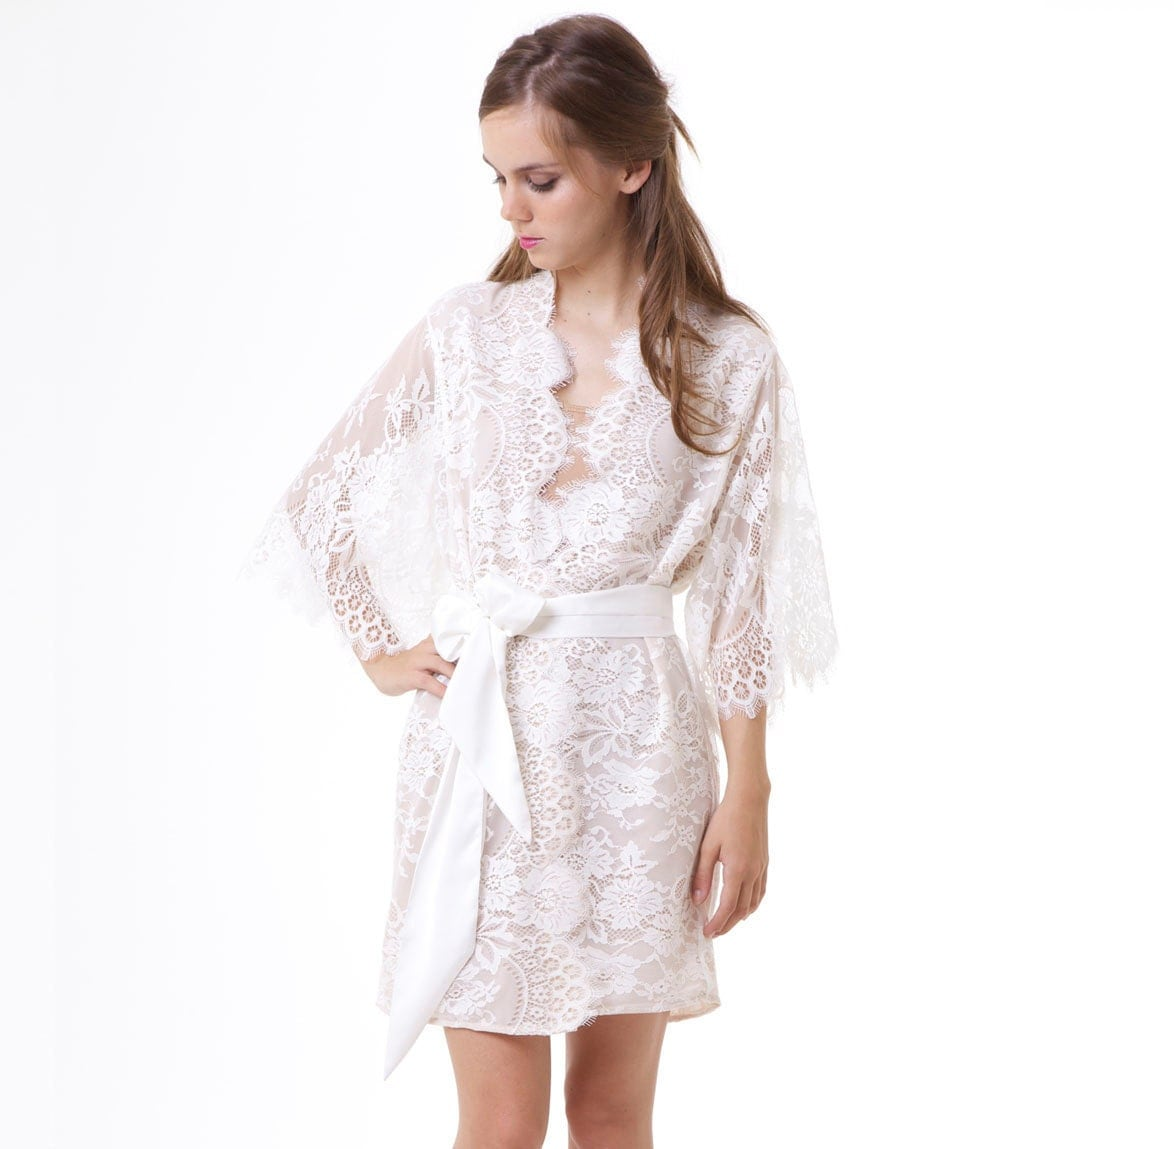 Robe: Swan Queen Scalloped Lined Bridal Lace Kimono Robe Ivory Off